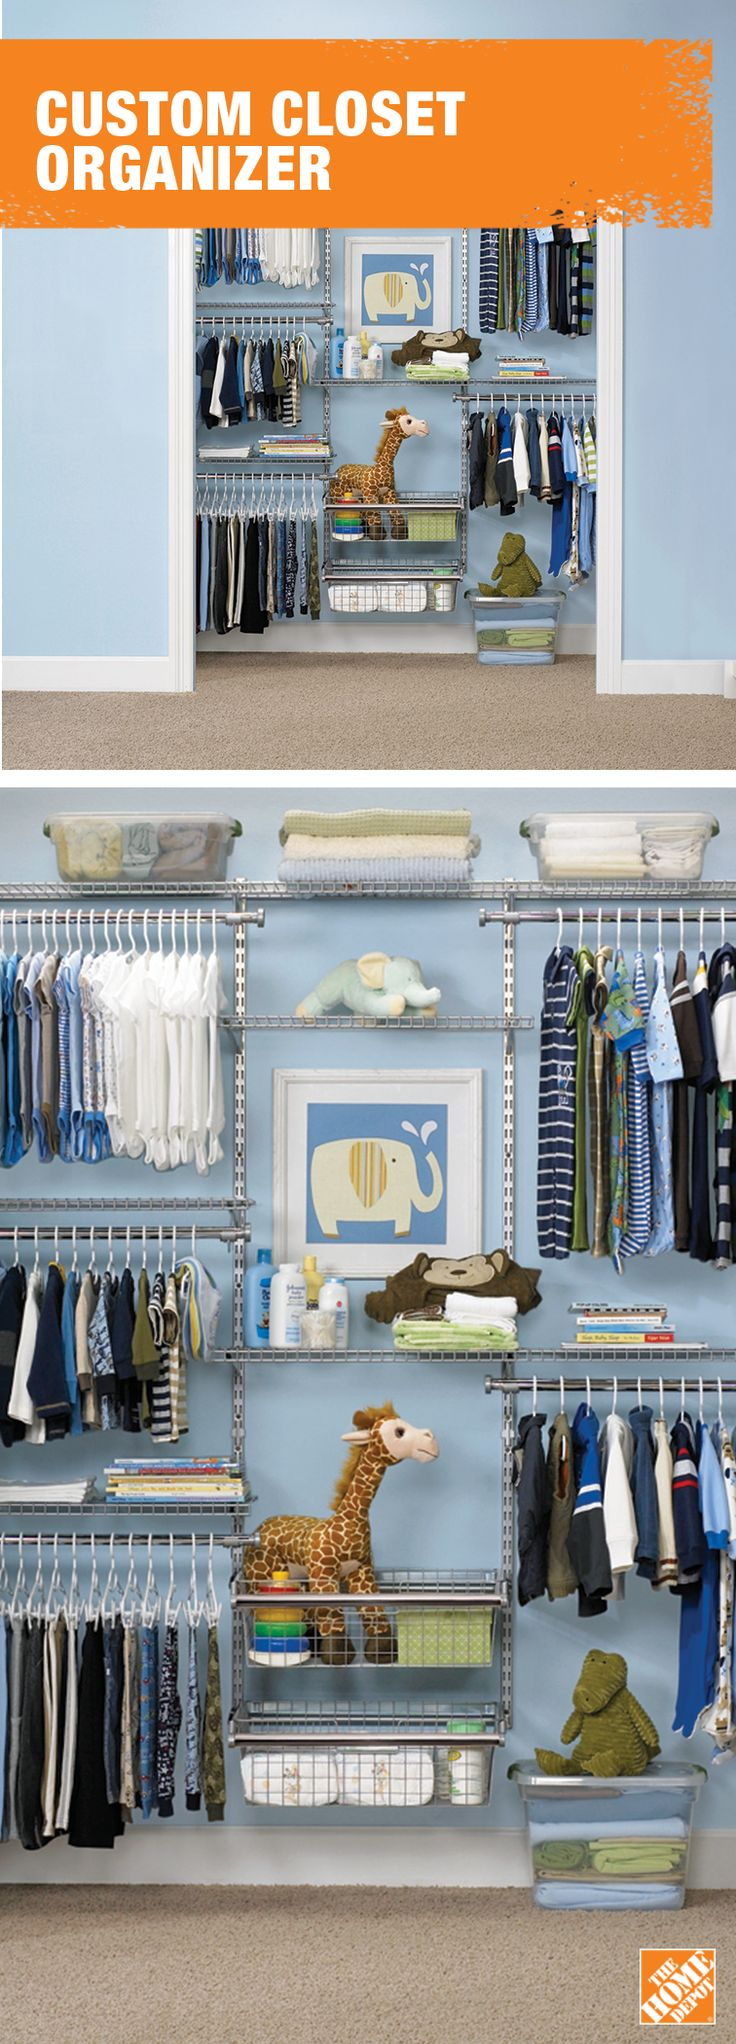 Tidy-up time can't get any more satisfying with a closet this organized. Learn more about custom storage solutions at homedepot.ca: http://hdepot.ca/2wHAwzO